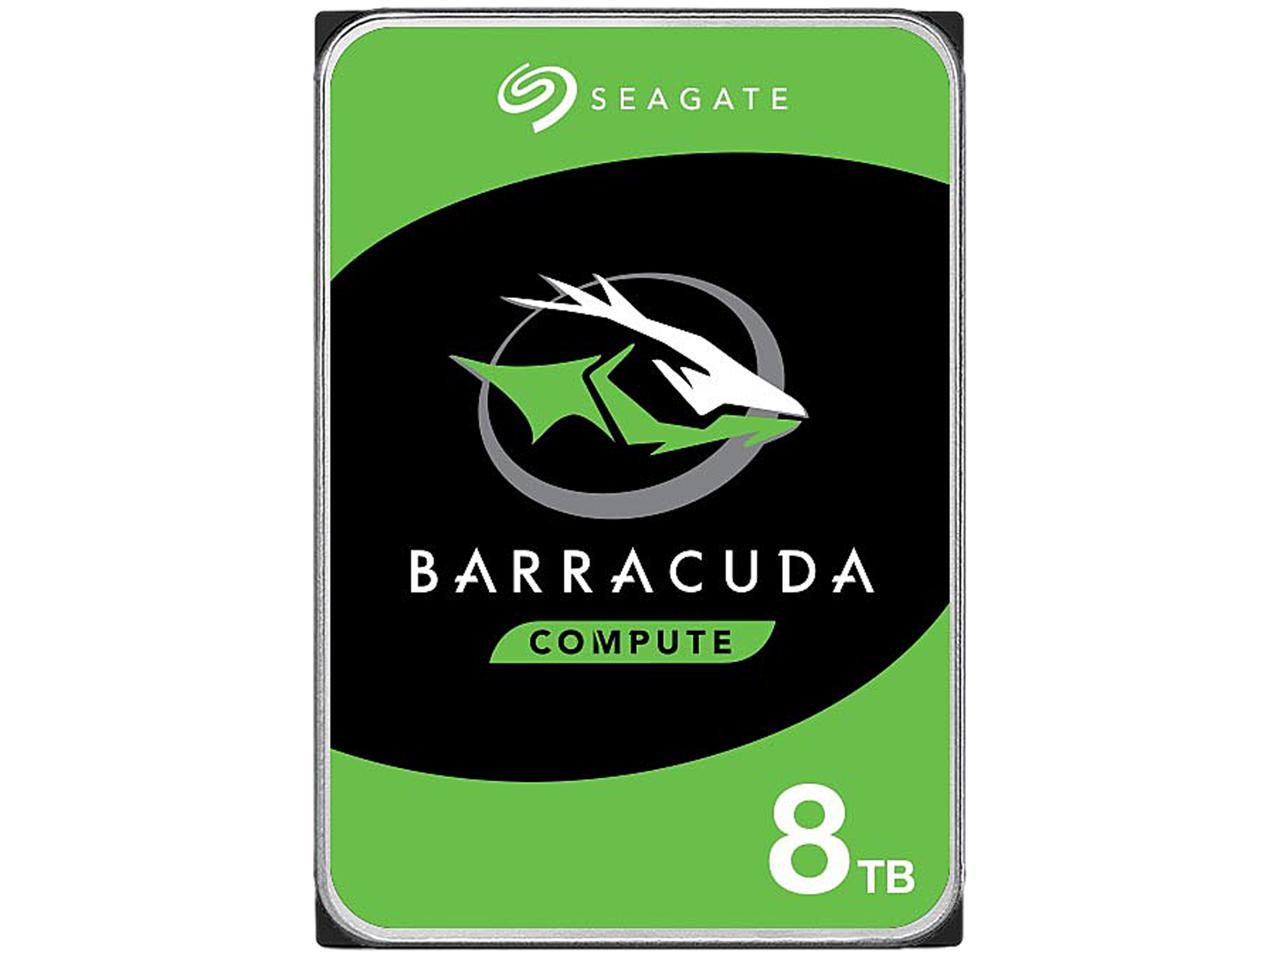 "Seagate Barracuda ST8000DM004 8TB 5.4K RPM SATA 6Gb/s 256MB 3.5"" Manufacturer Recertified HDD"